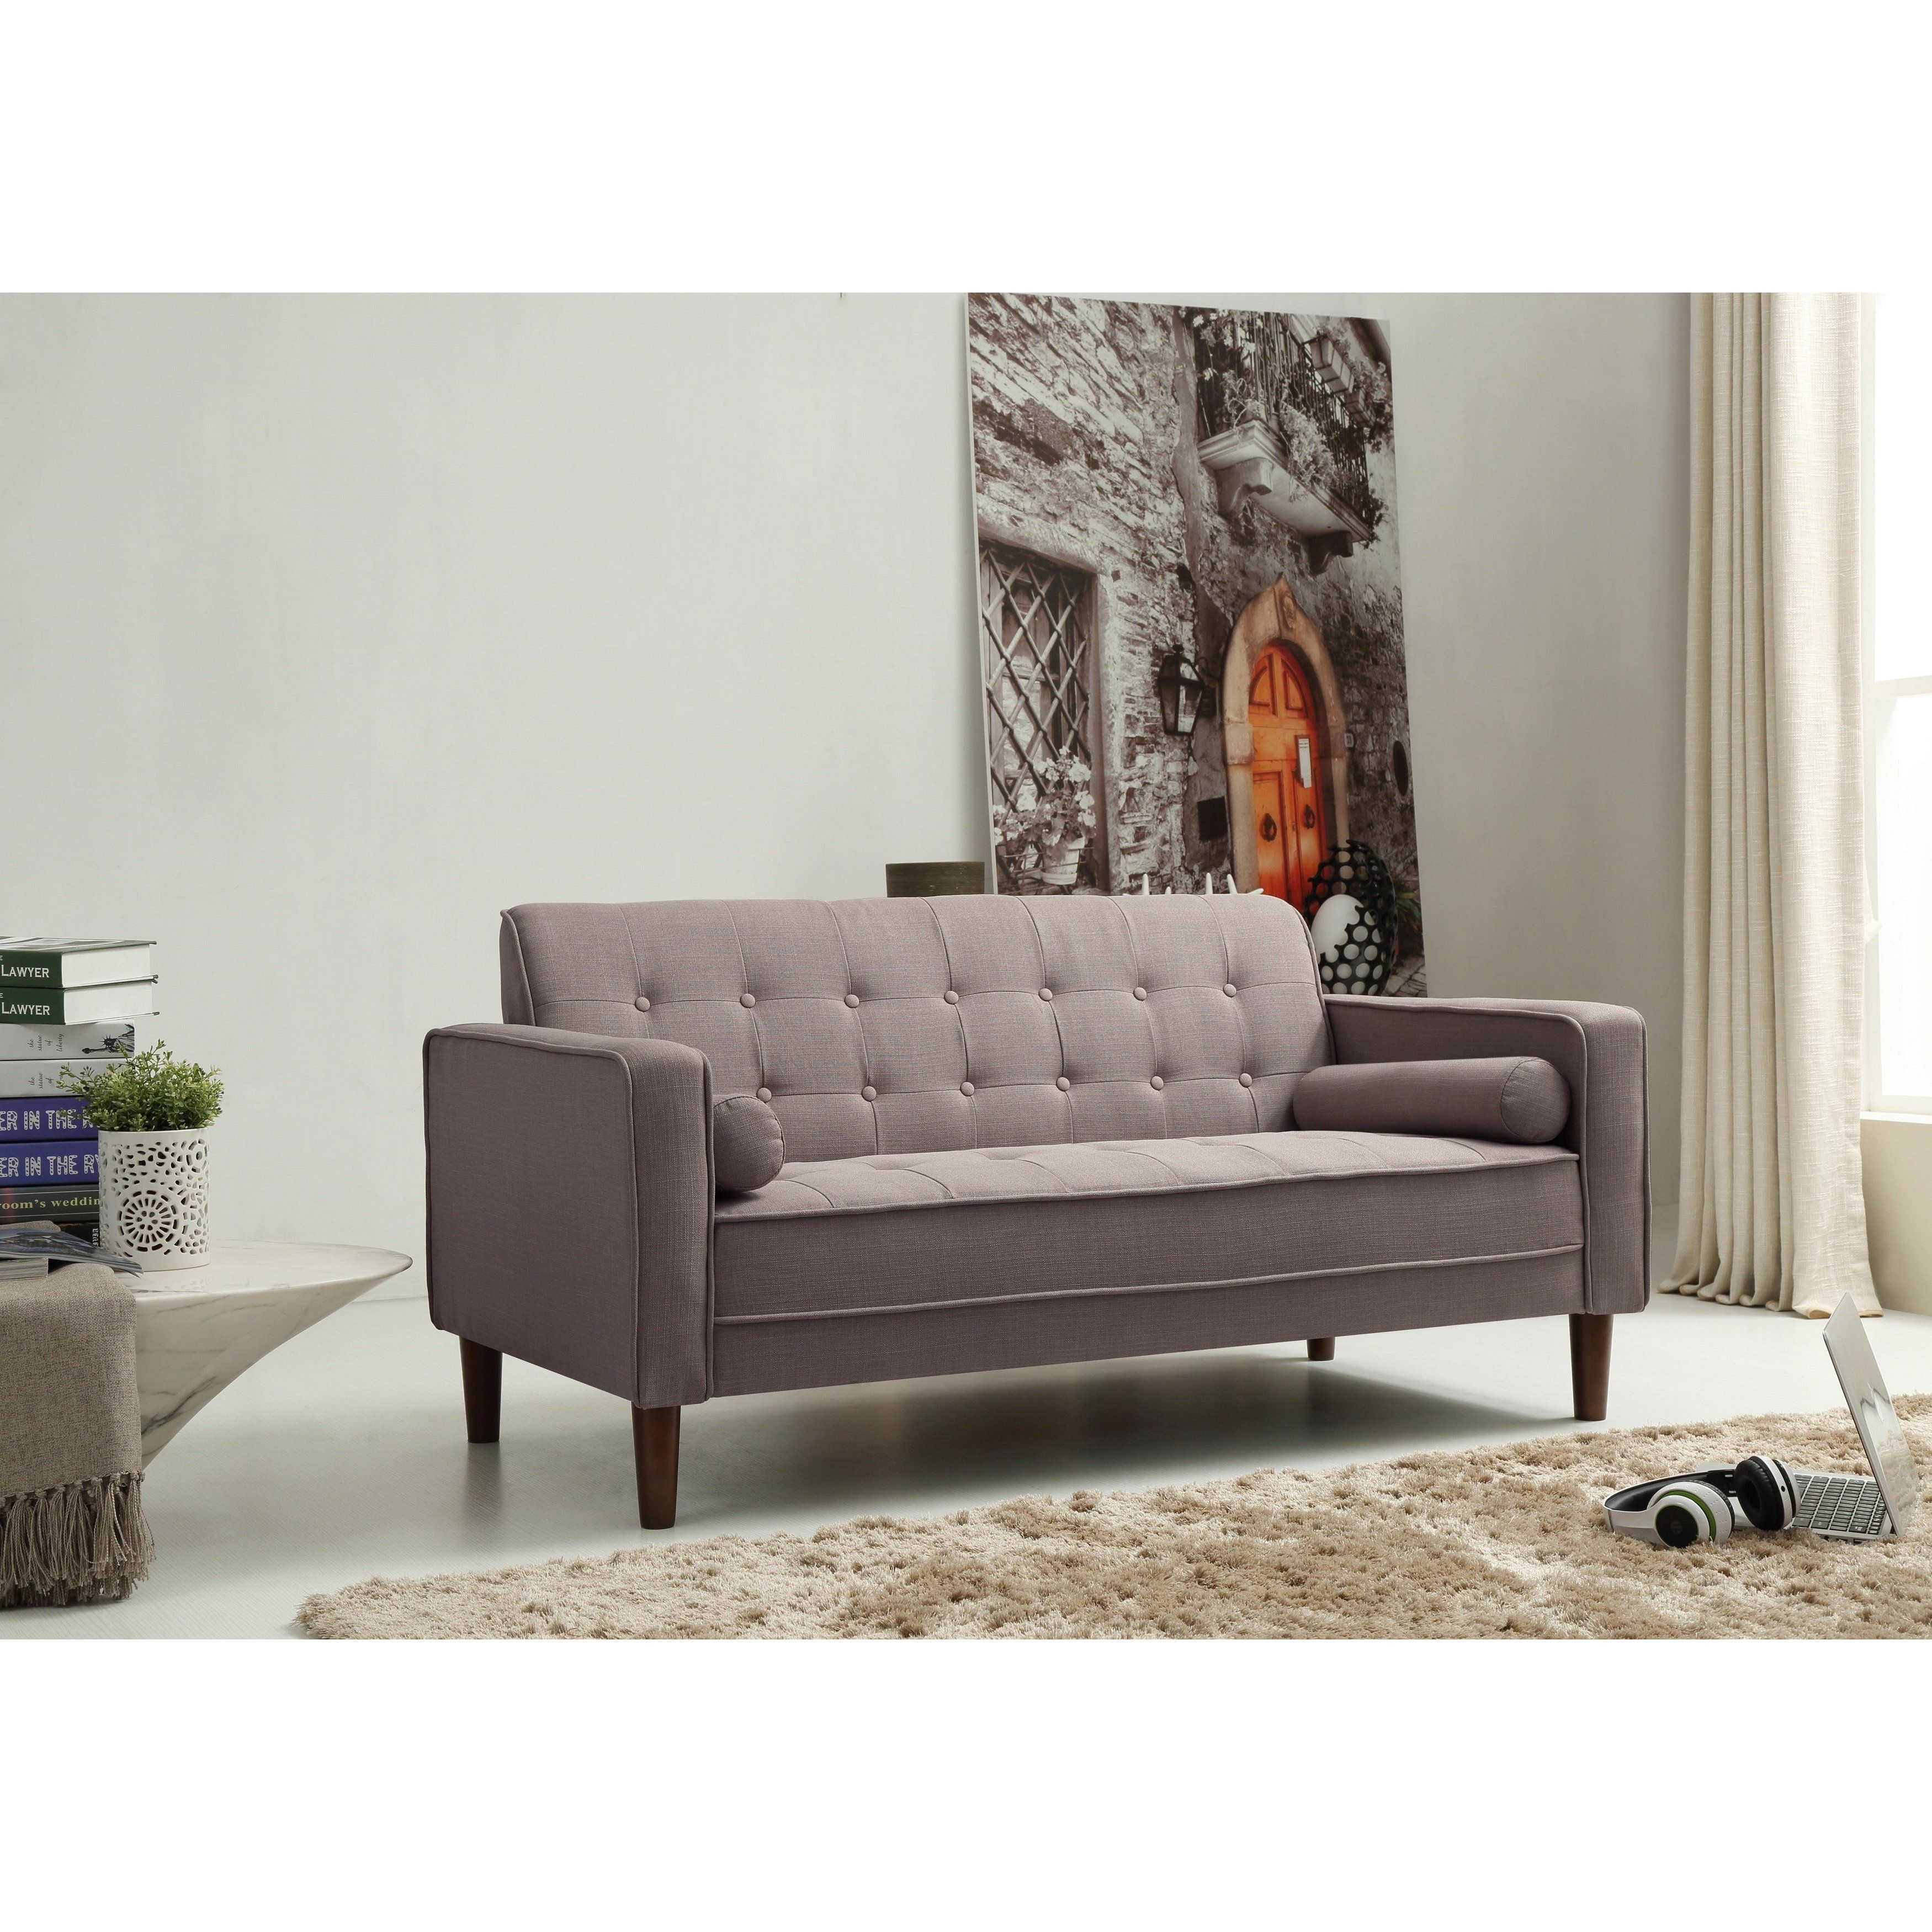 Nathaniel Home Nolan Tufted Grey Linen Sofa (Nolan Grey Sofa